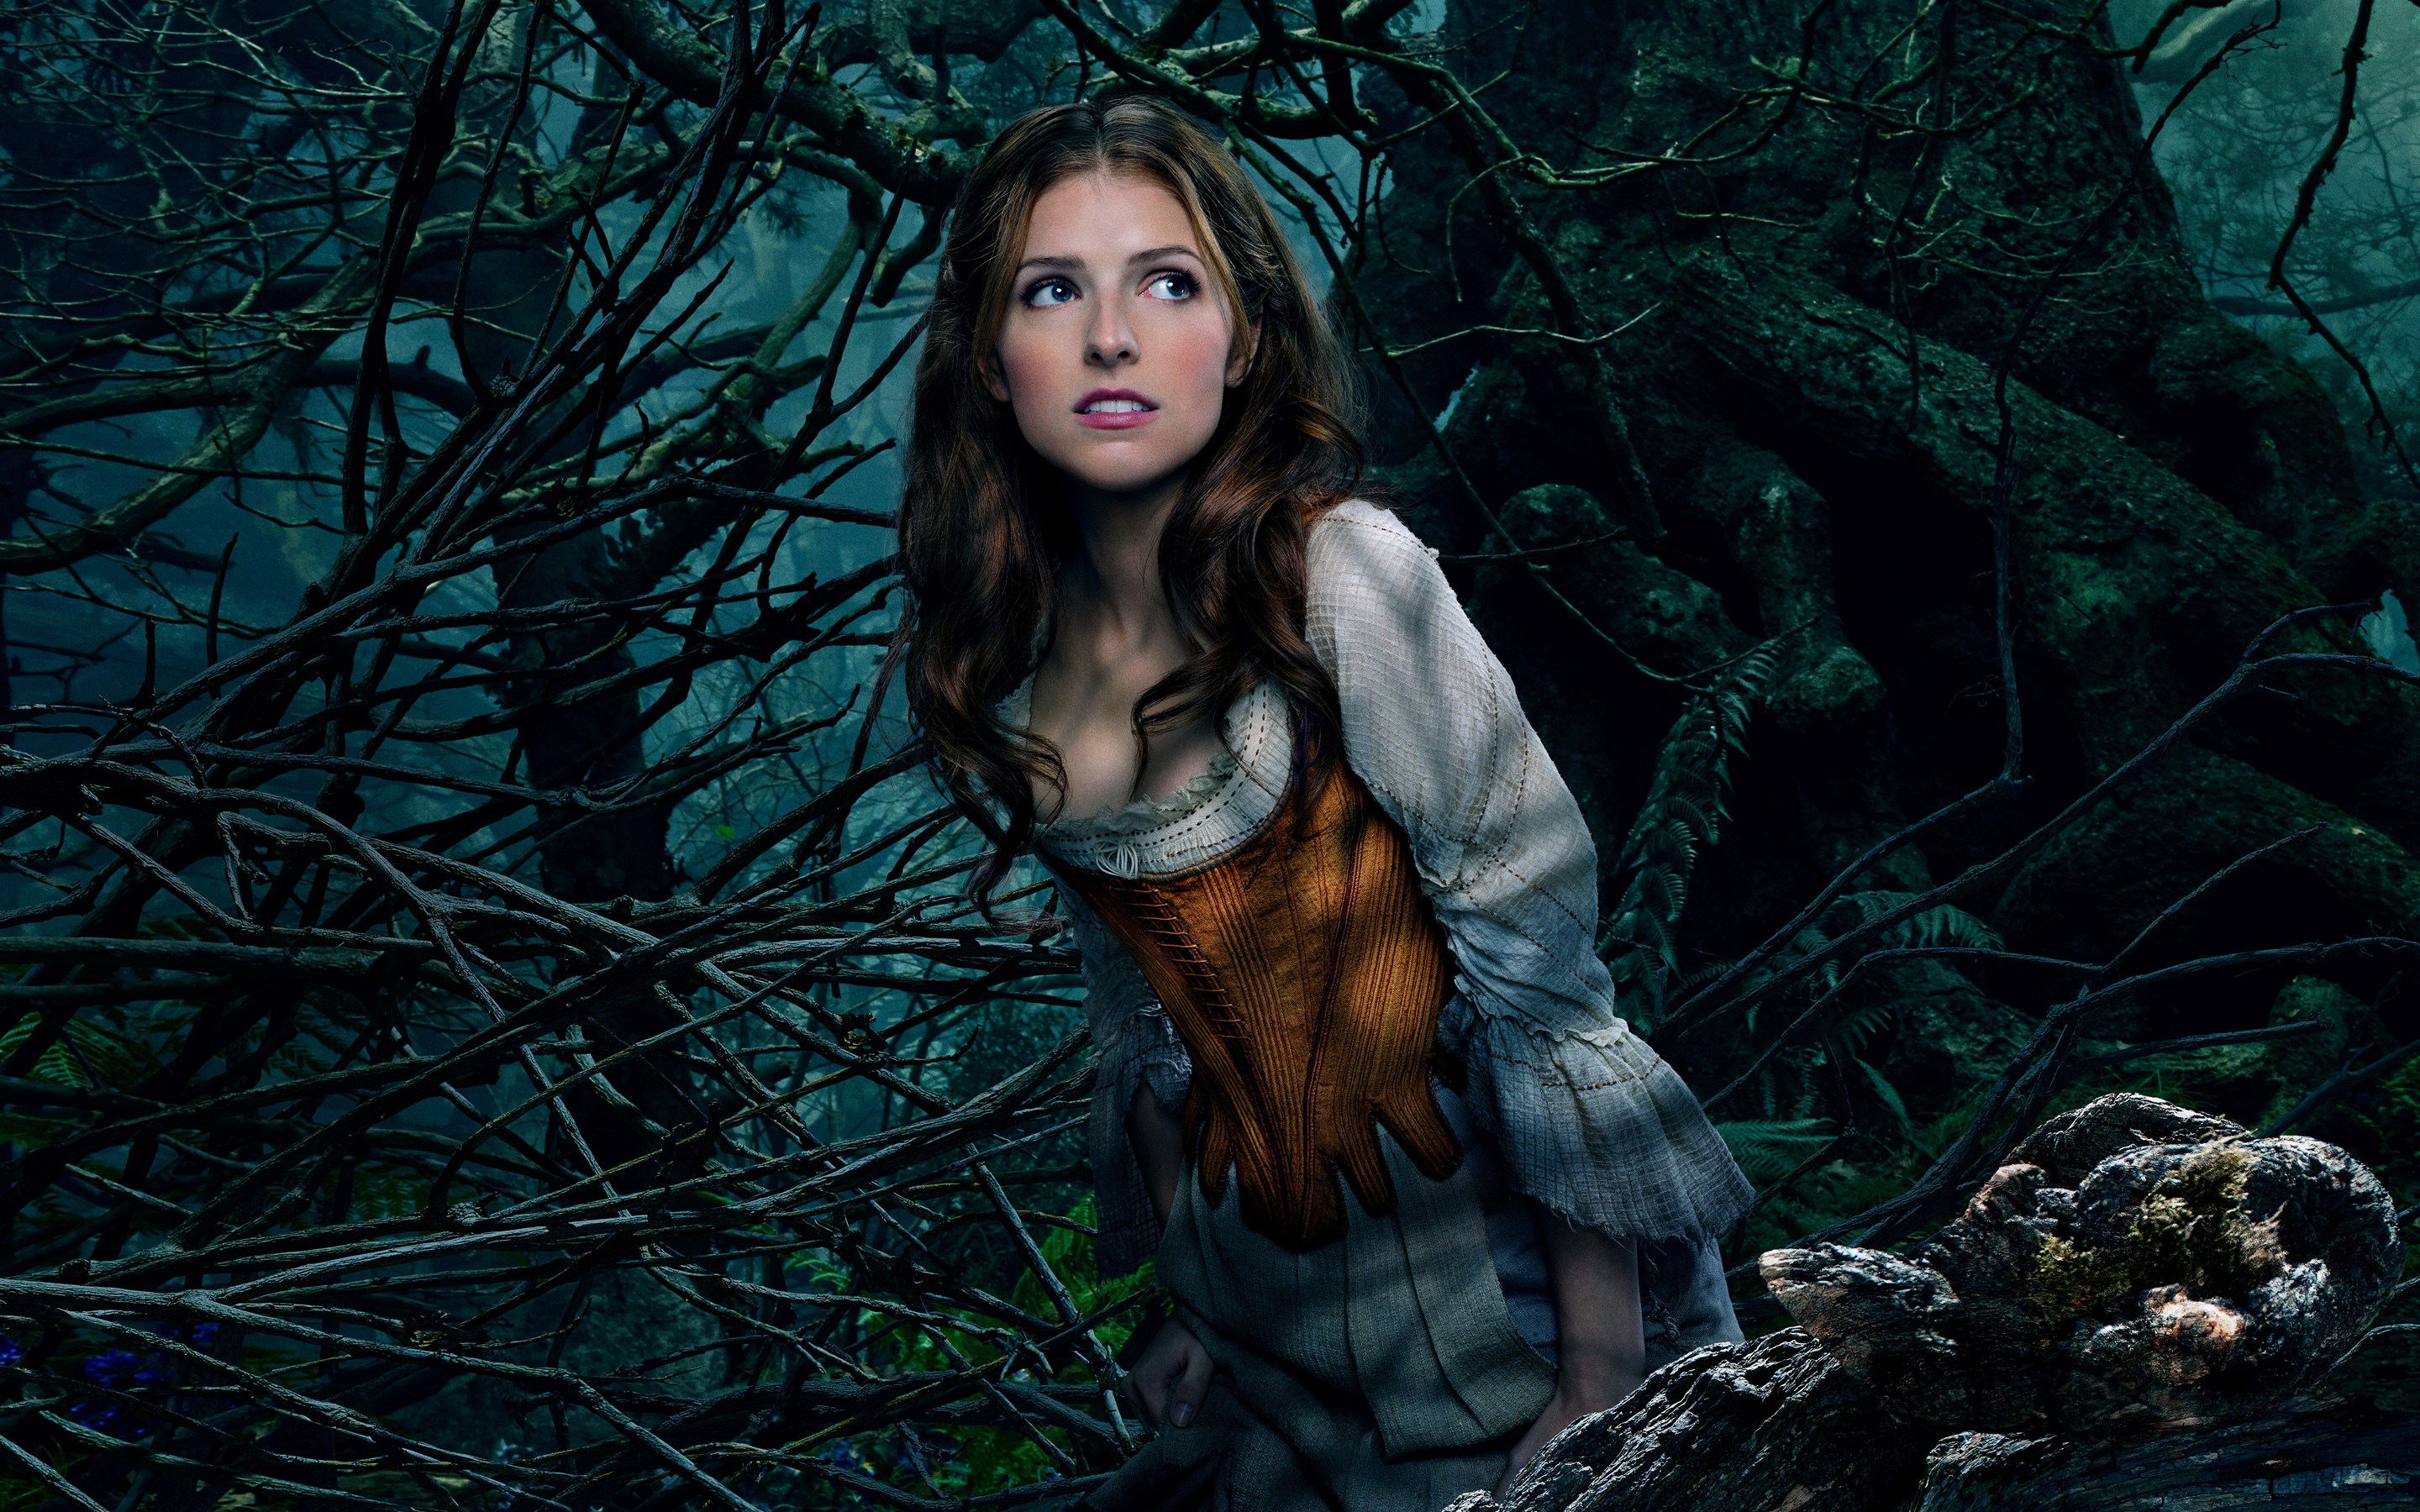 Anna Kendrick As Cinderella 4139351 2880x1800 All For